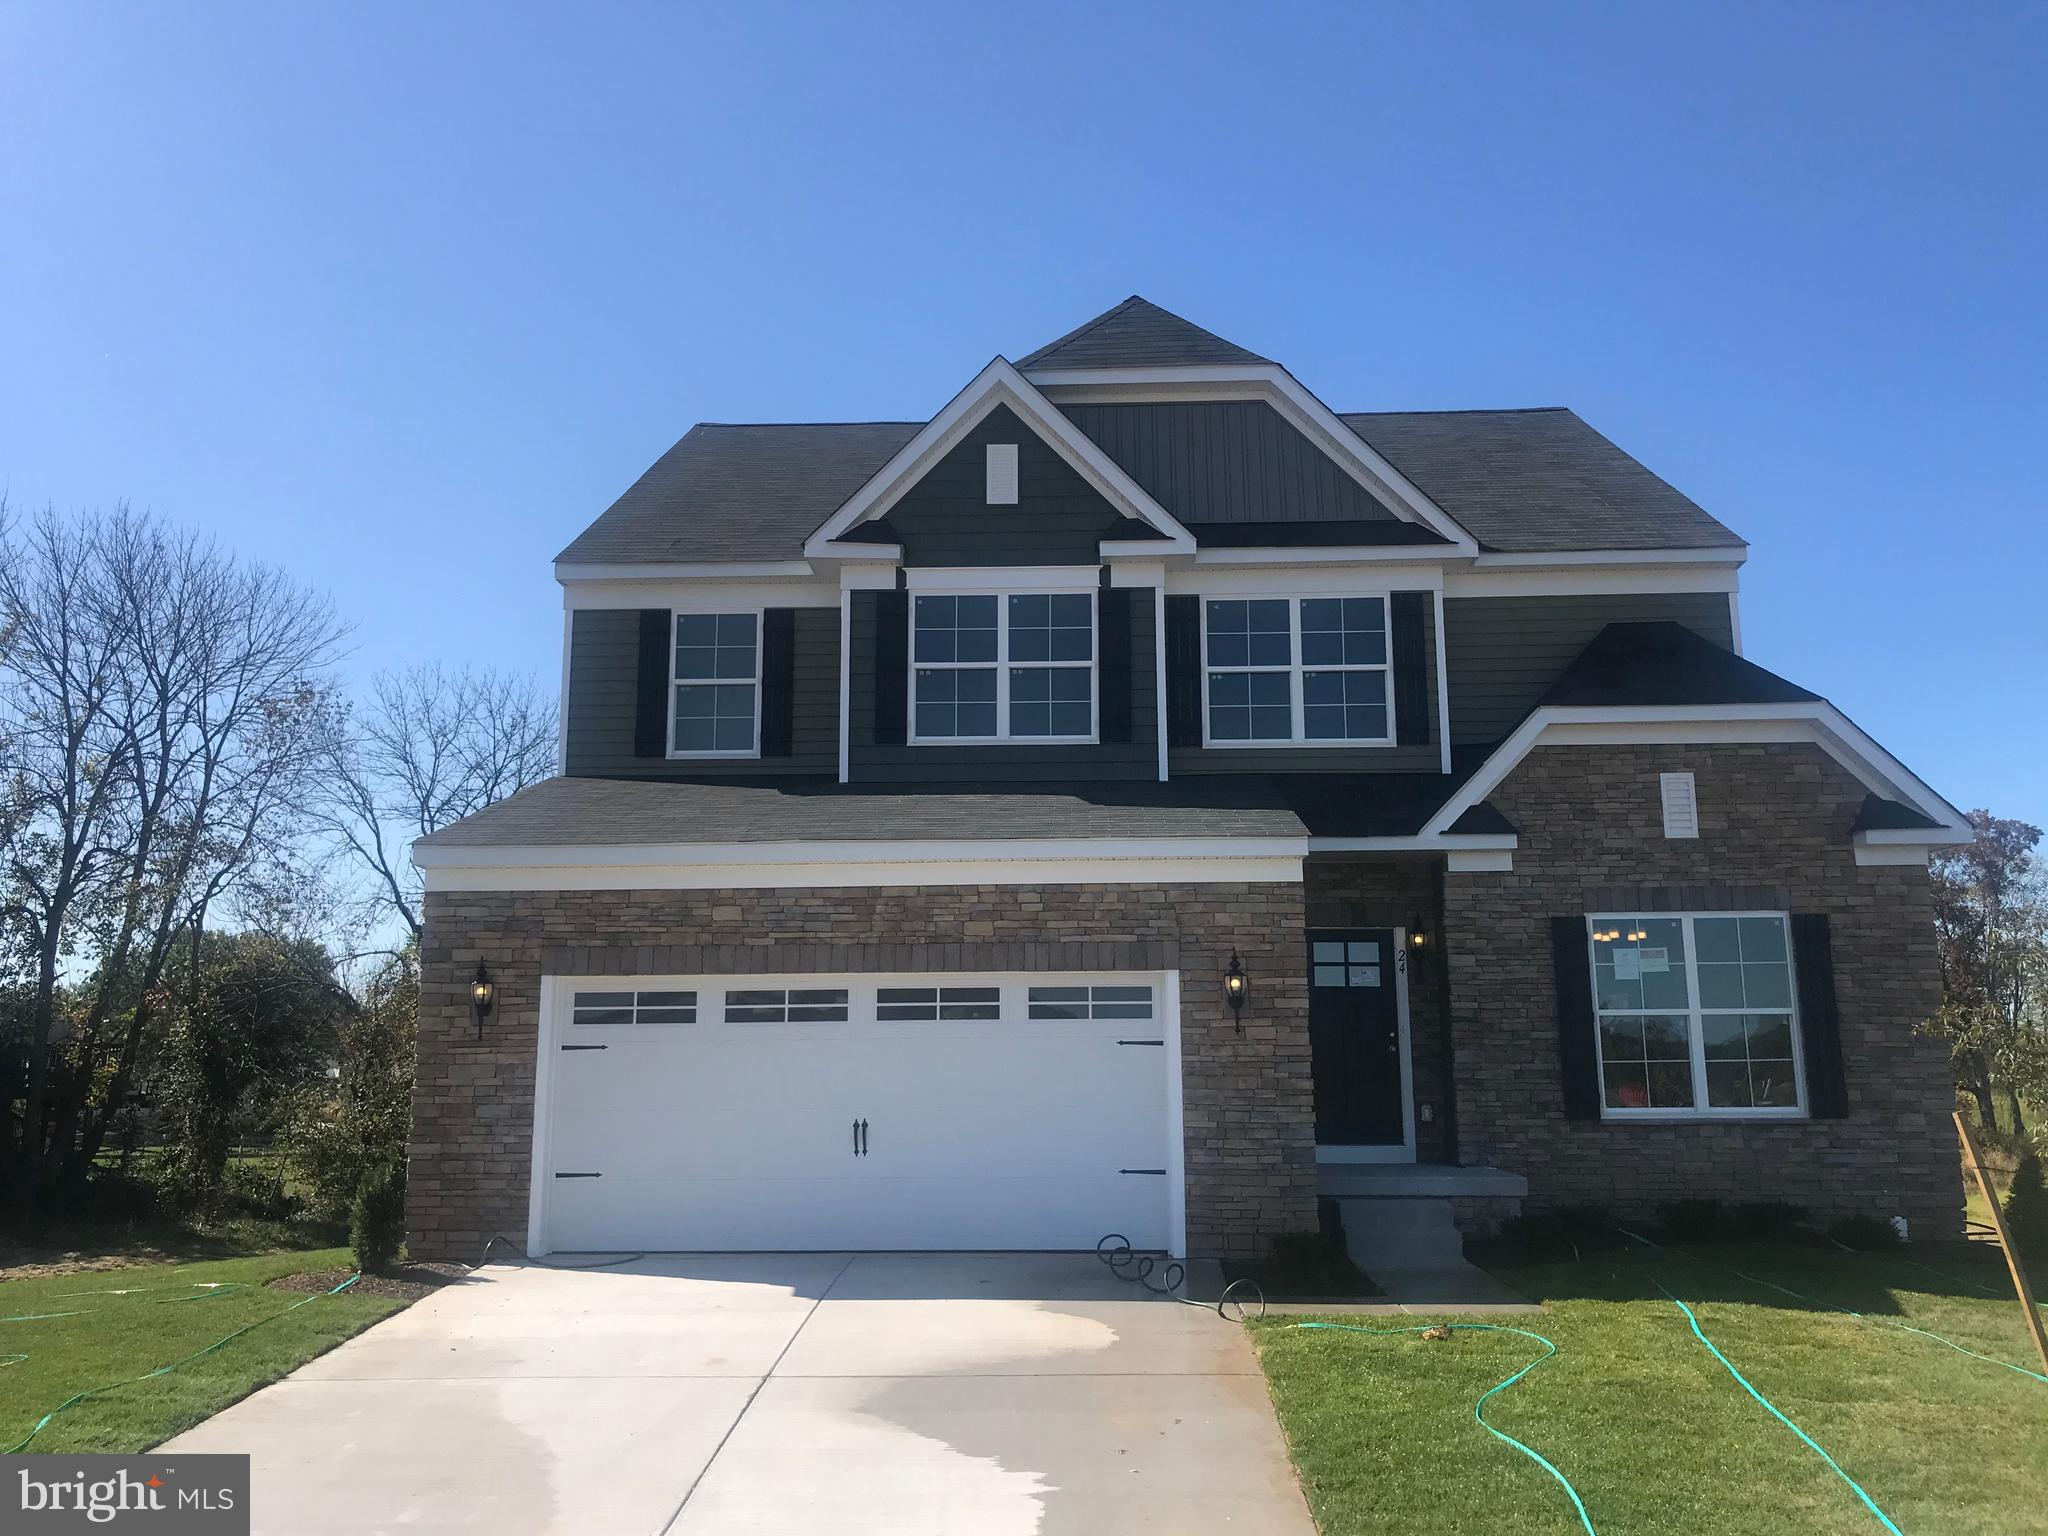 24 GAINES MILL DRIVE, TANEYTOWN, MD 21787